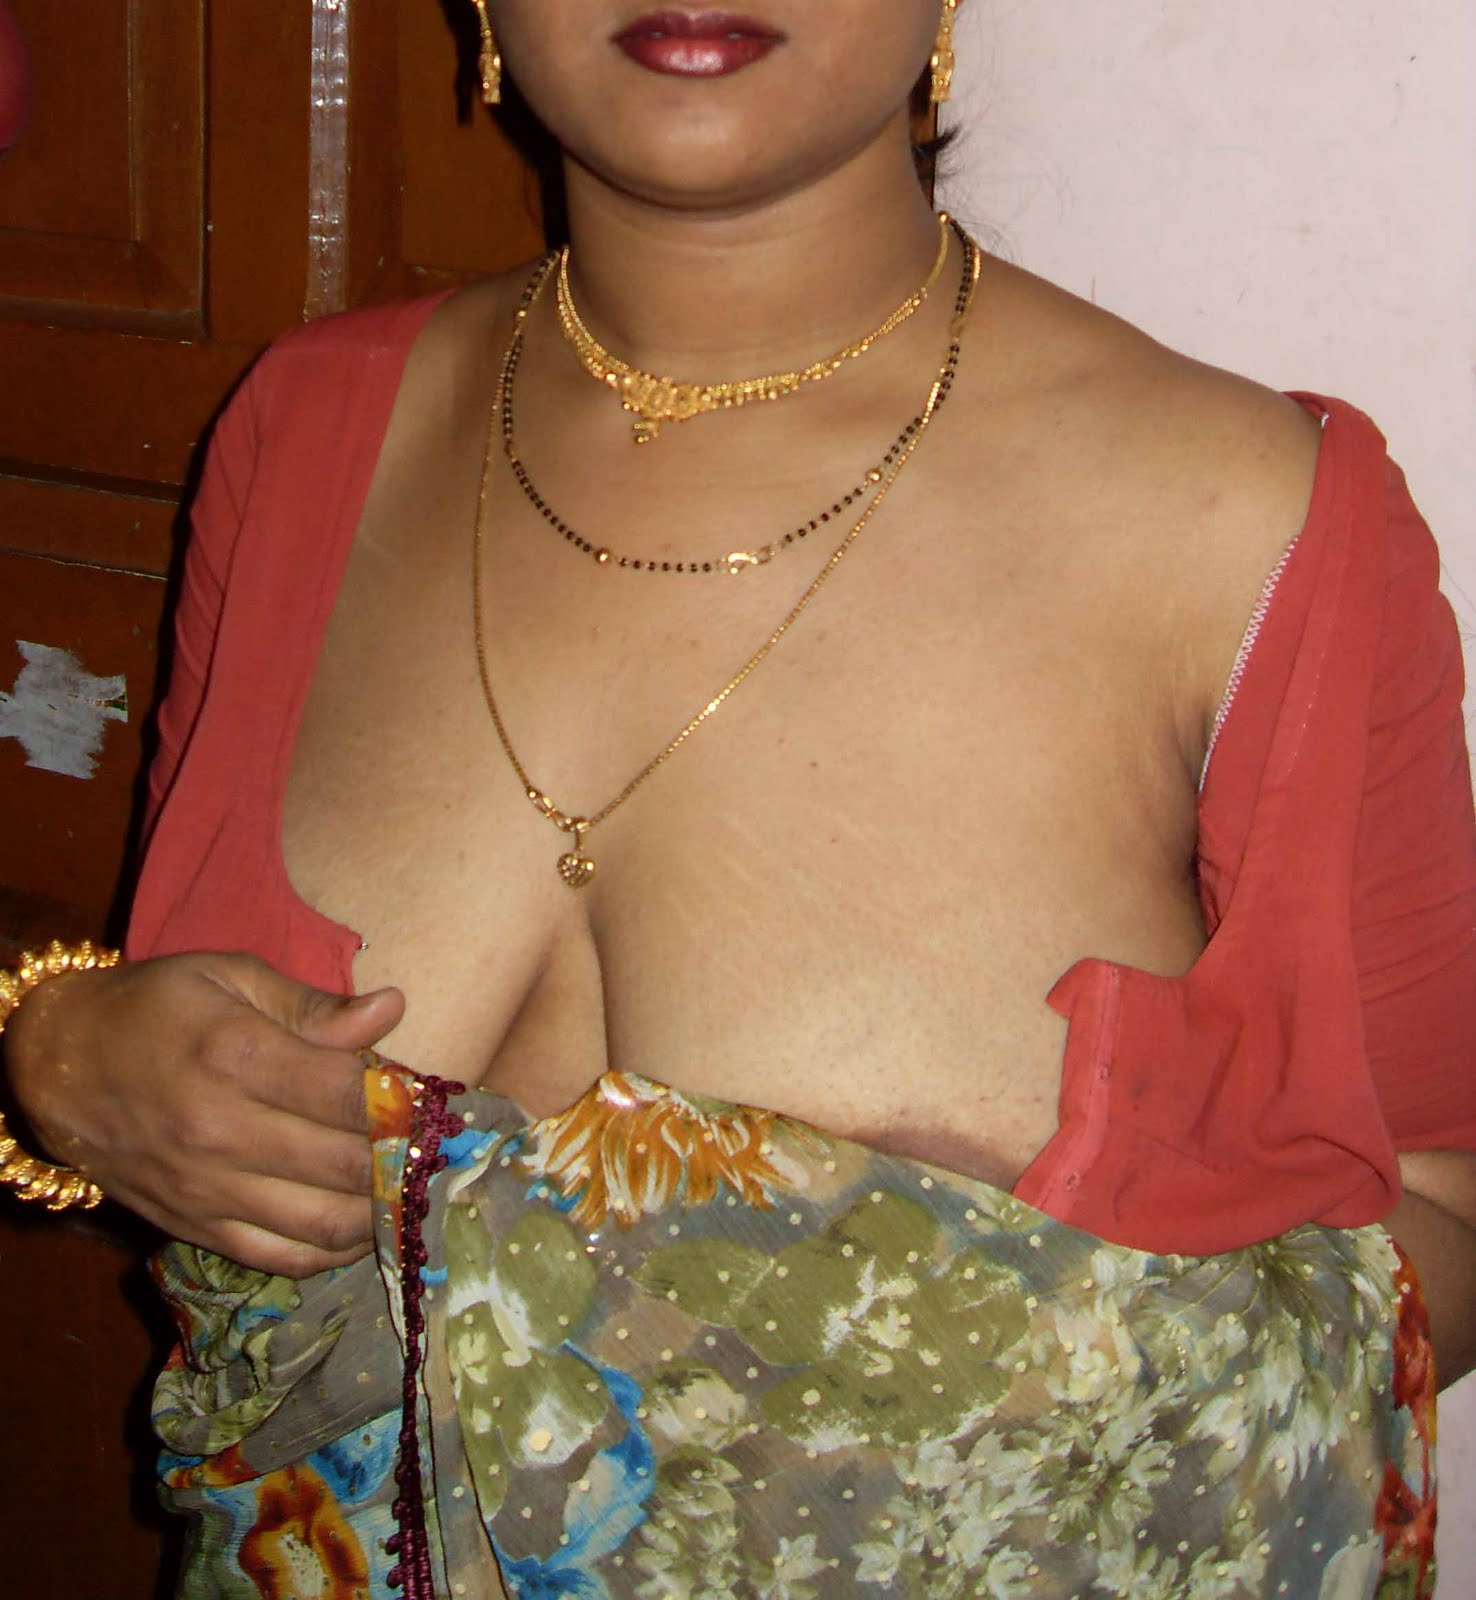 mallu sex images blog